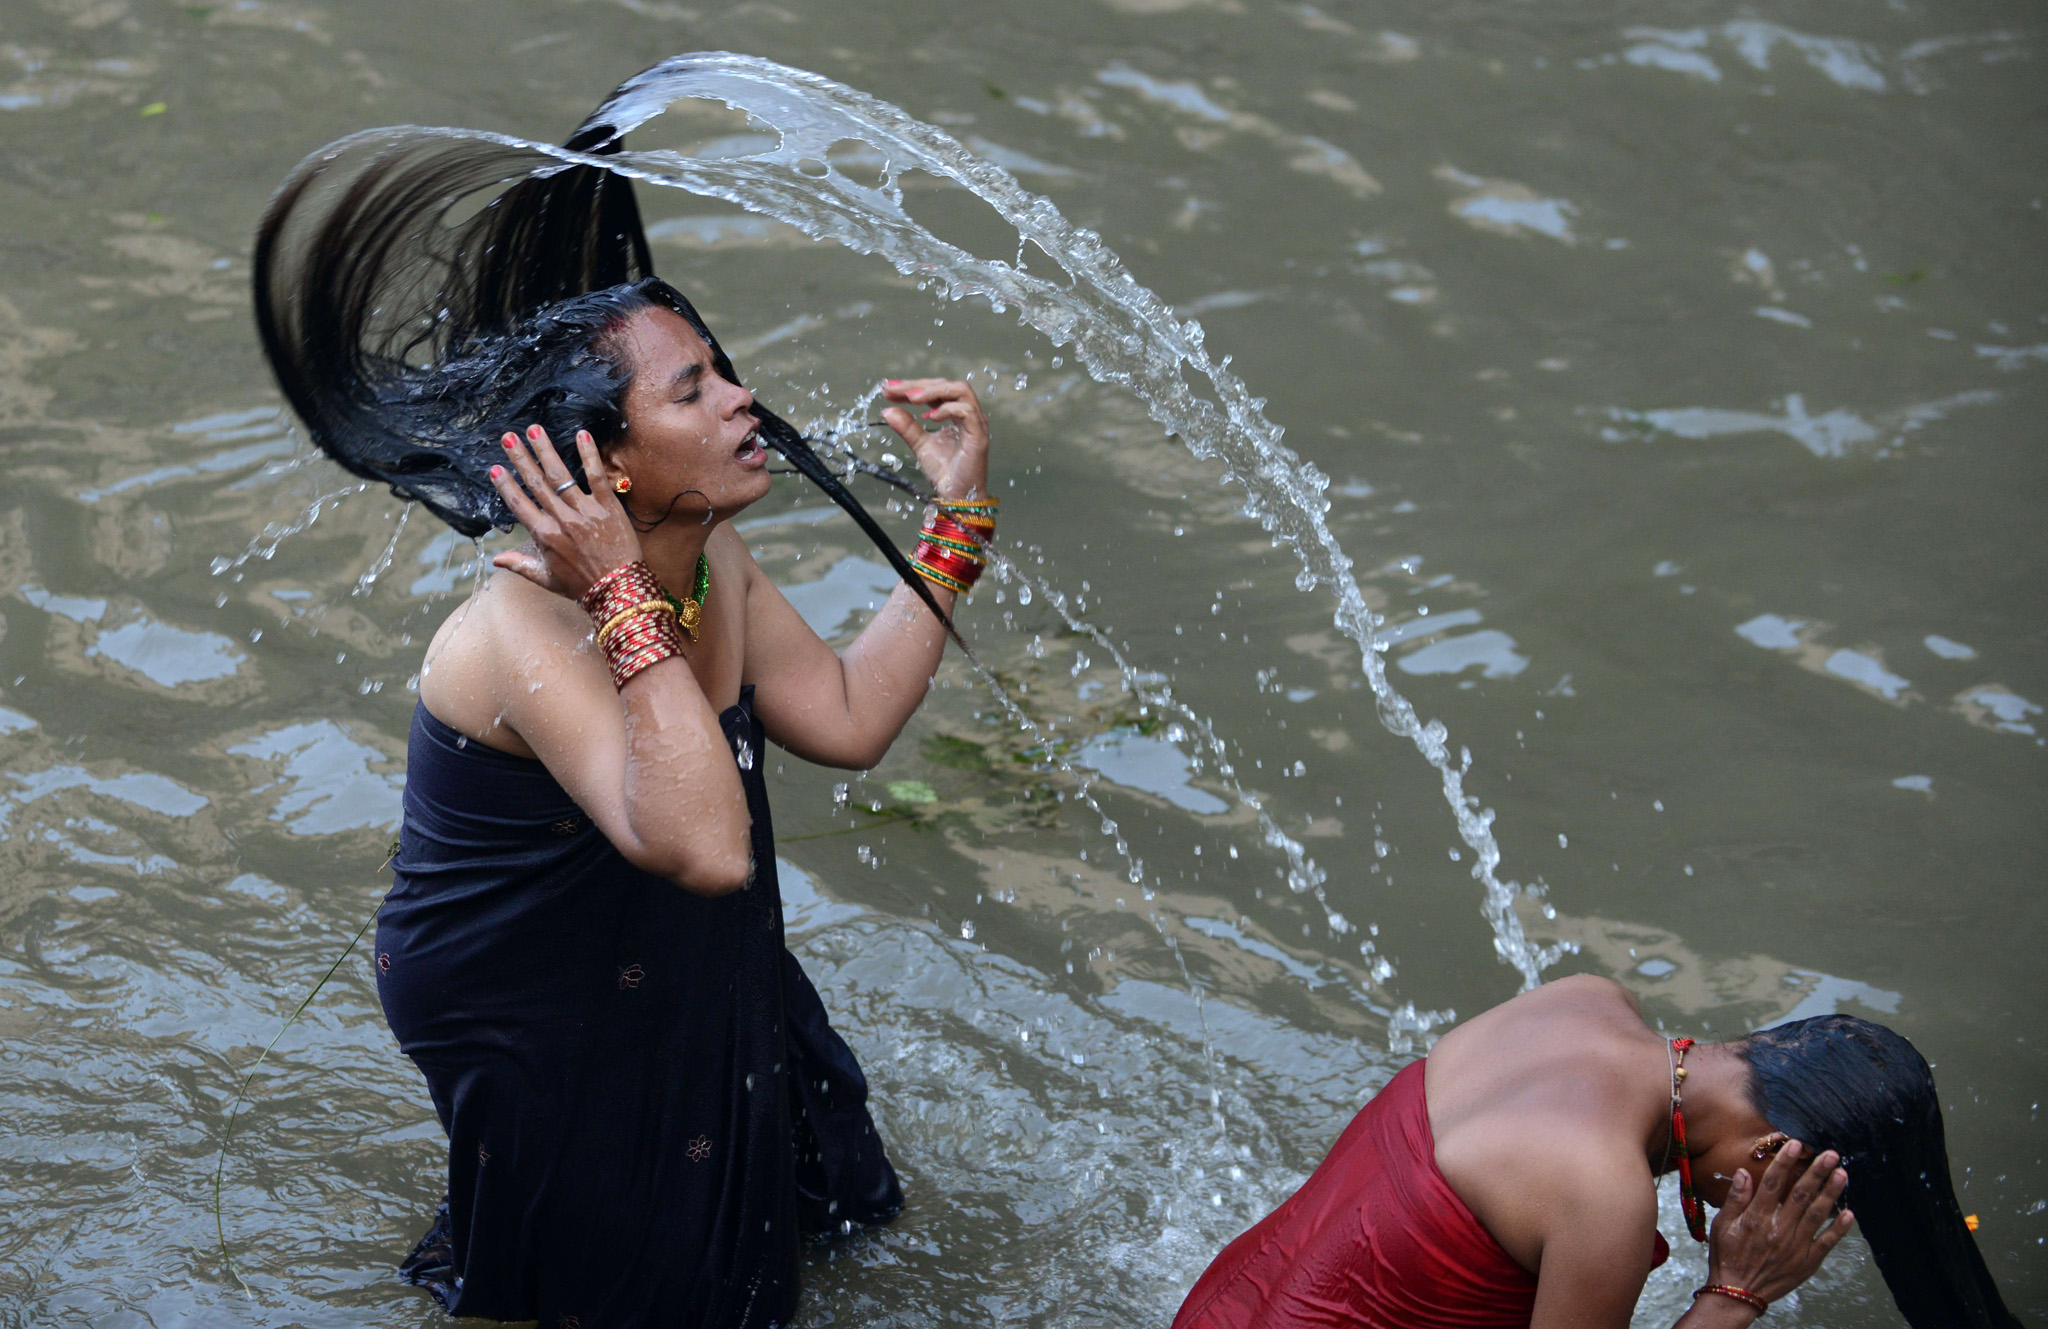 Nepalese Hindu women take a ritual bath in the Bagmati River during the Rishi Panchami festival in Kathmandu. Rishi Panchami marks the end of the three-day long Teej festival, in which married women fast and pray for the good health of their husbands to Shiva, the Hindu god of destruction, while unmarried women wish for handsome husbands and happy conjugal lives.